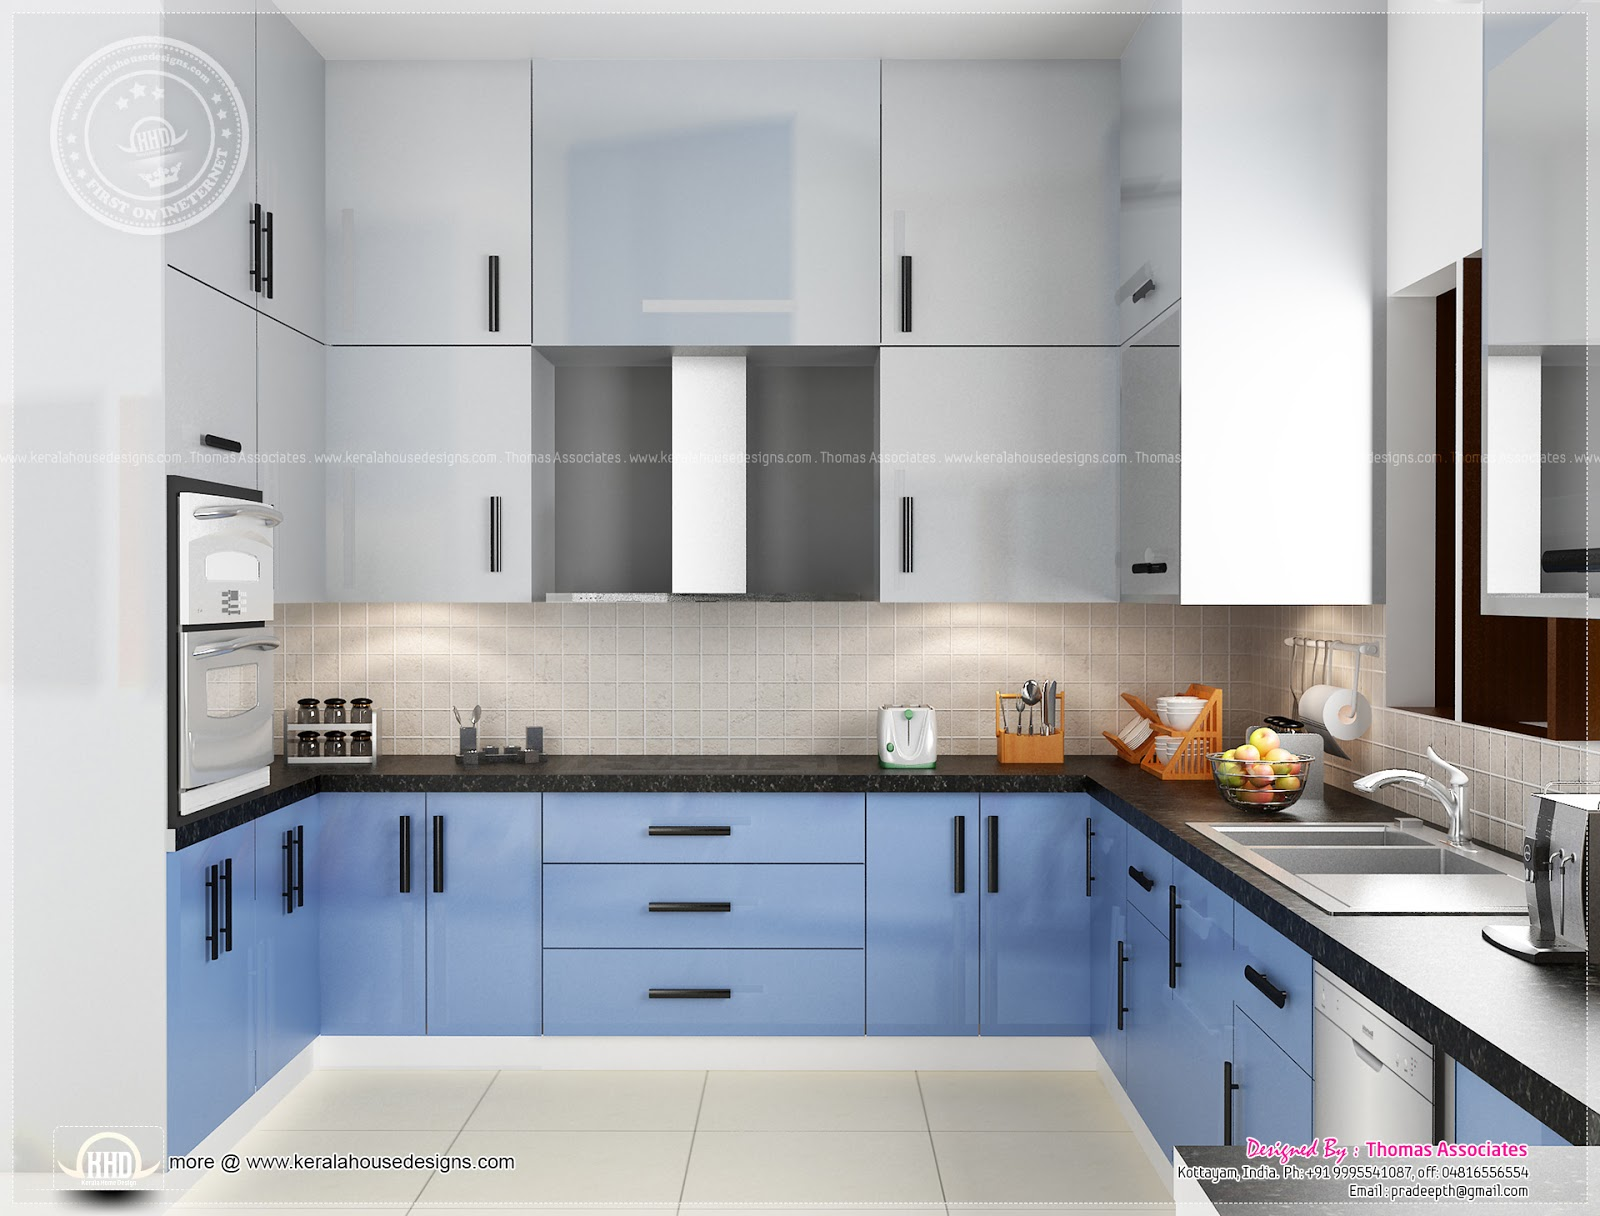 neat and simple blue toned kitchen and bathroom interior designs by